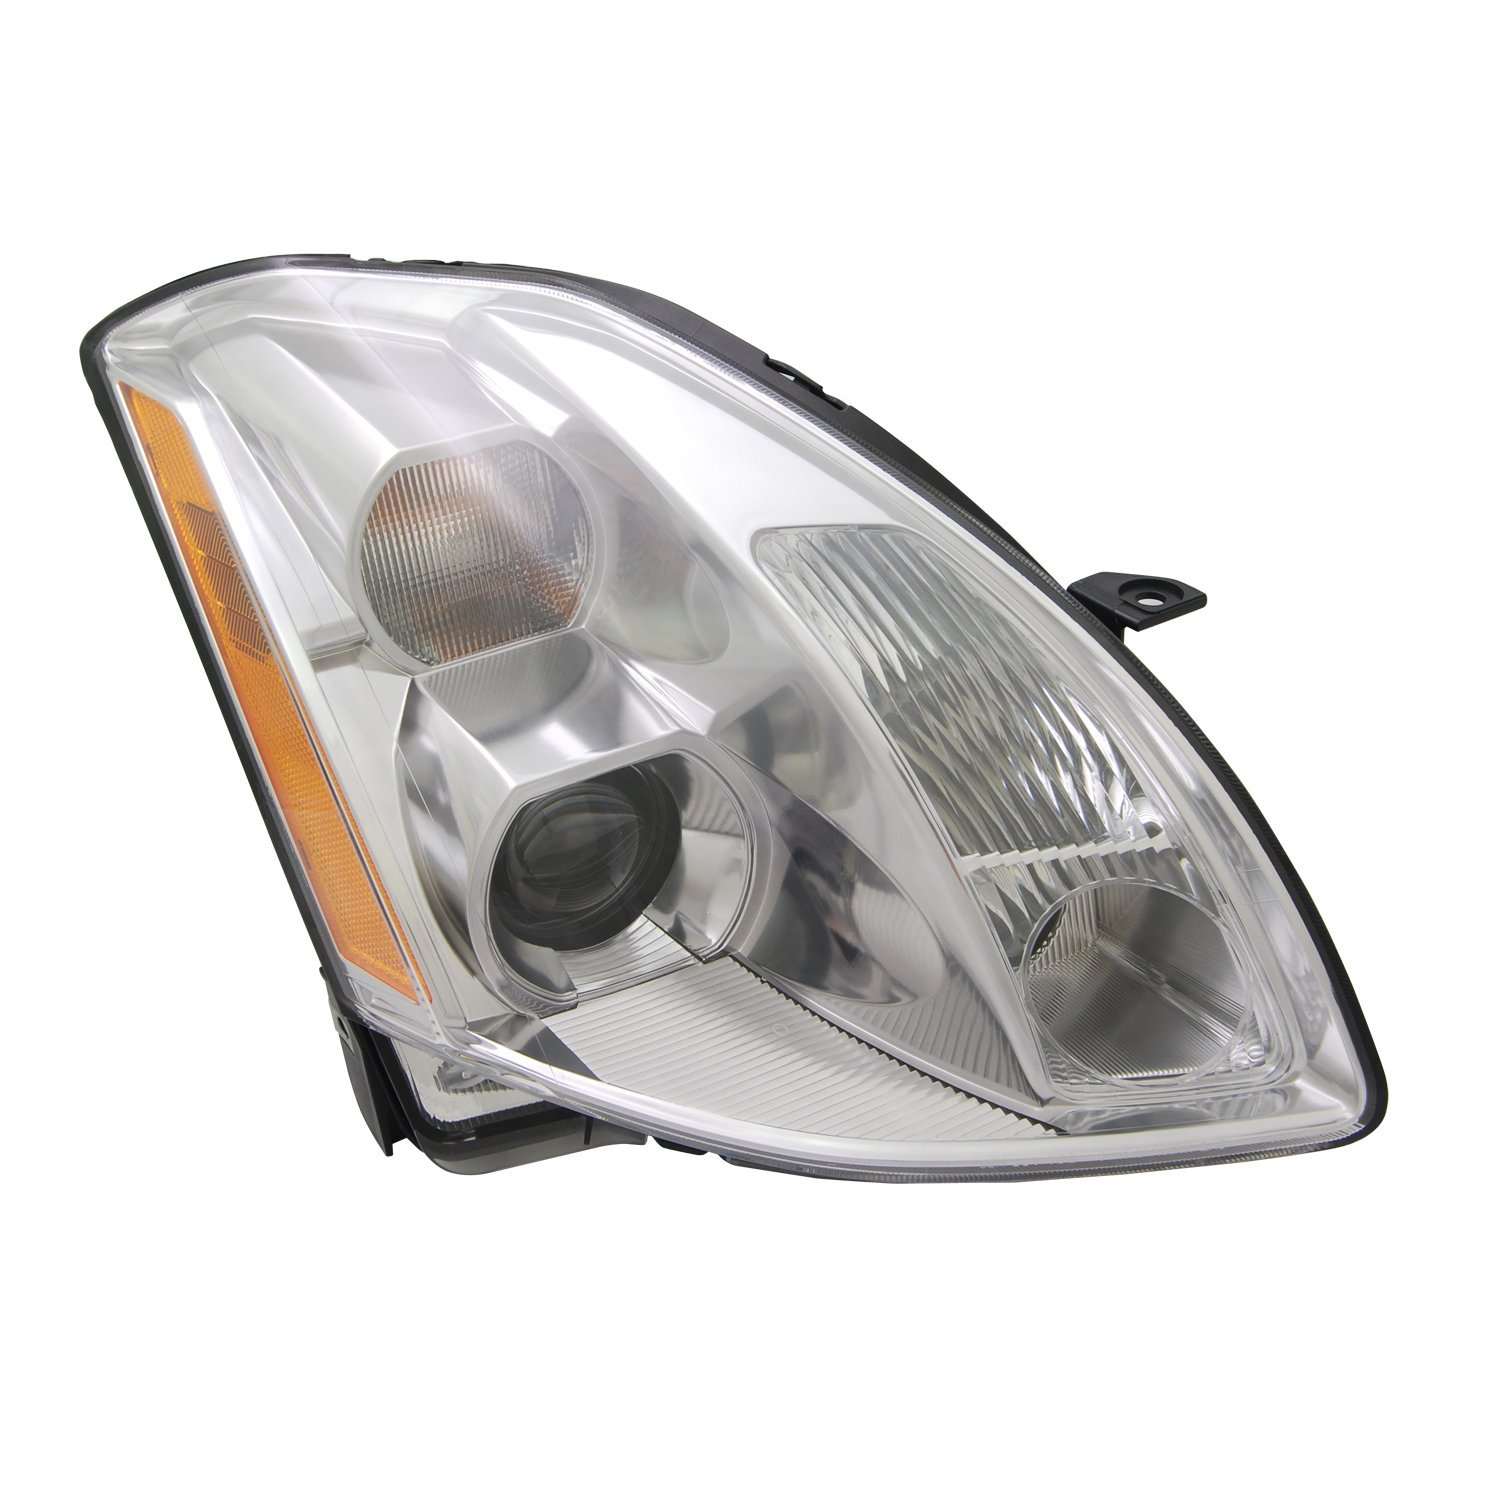 TYC 20-6521-00-1 Nissan Maxima Right Replacement Head Lamp